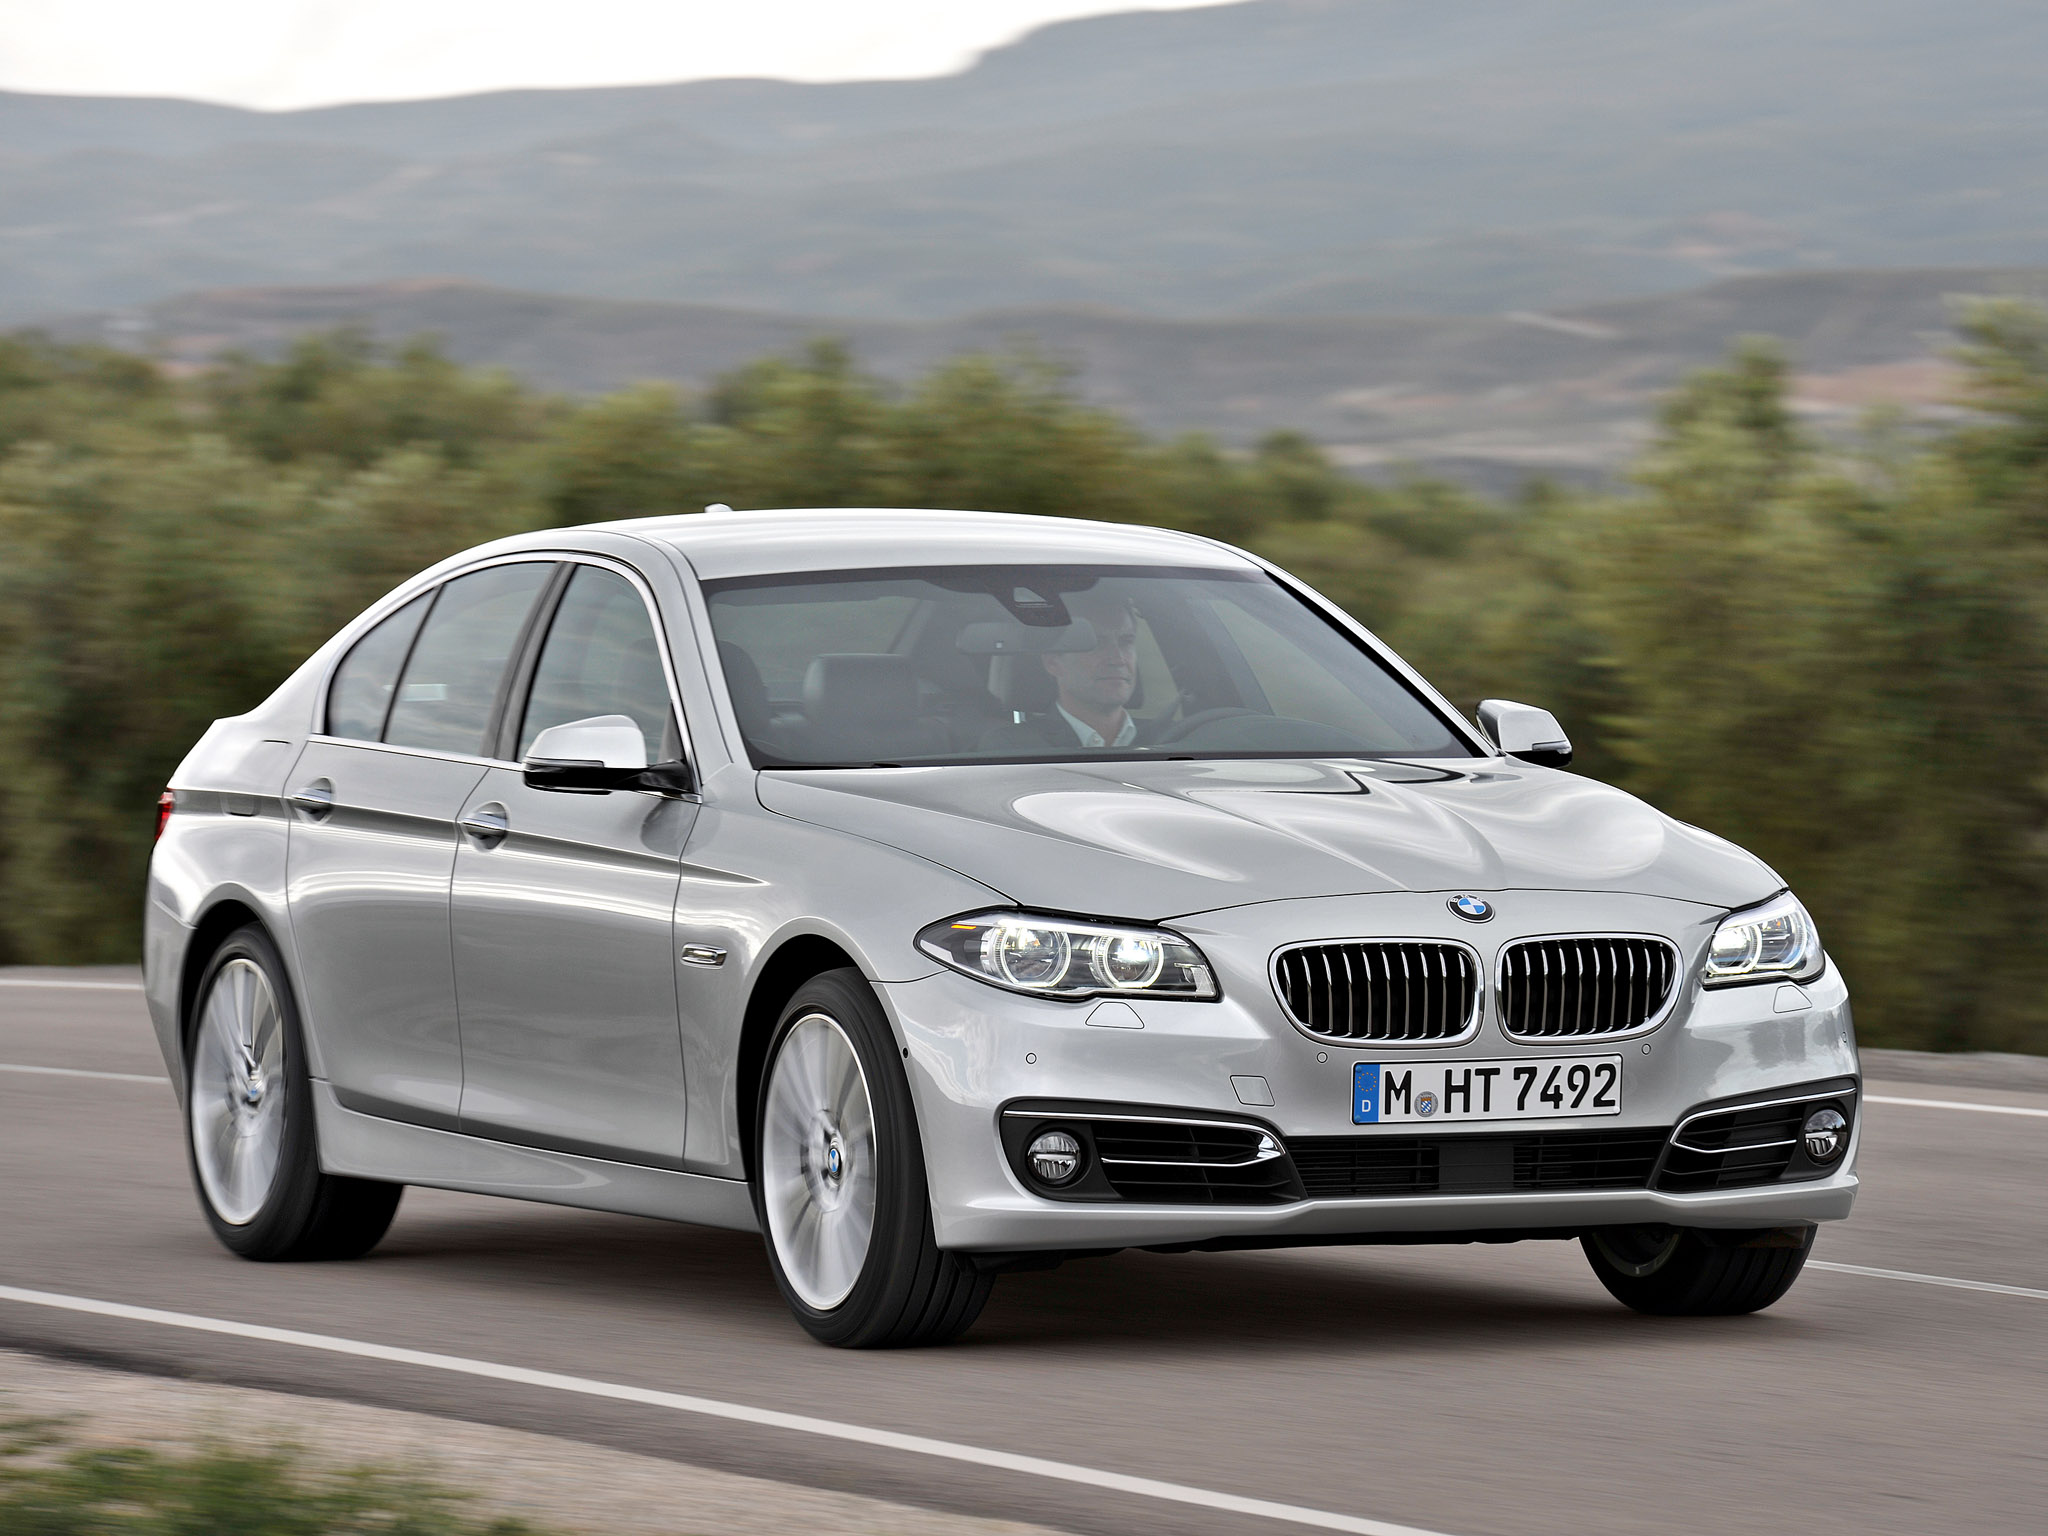 Bmw 535i 2005 Review Amazing Pictures And Images Look